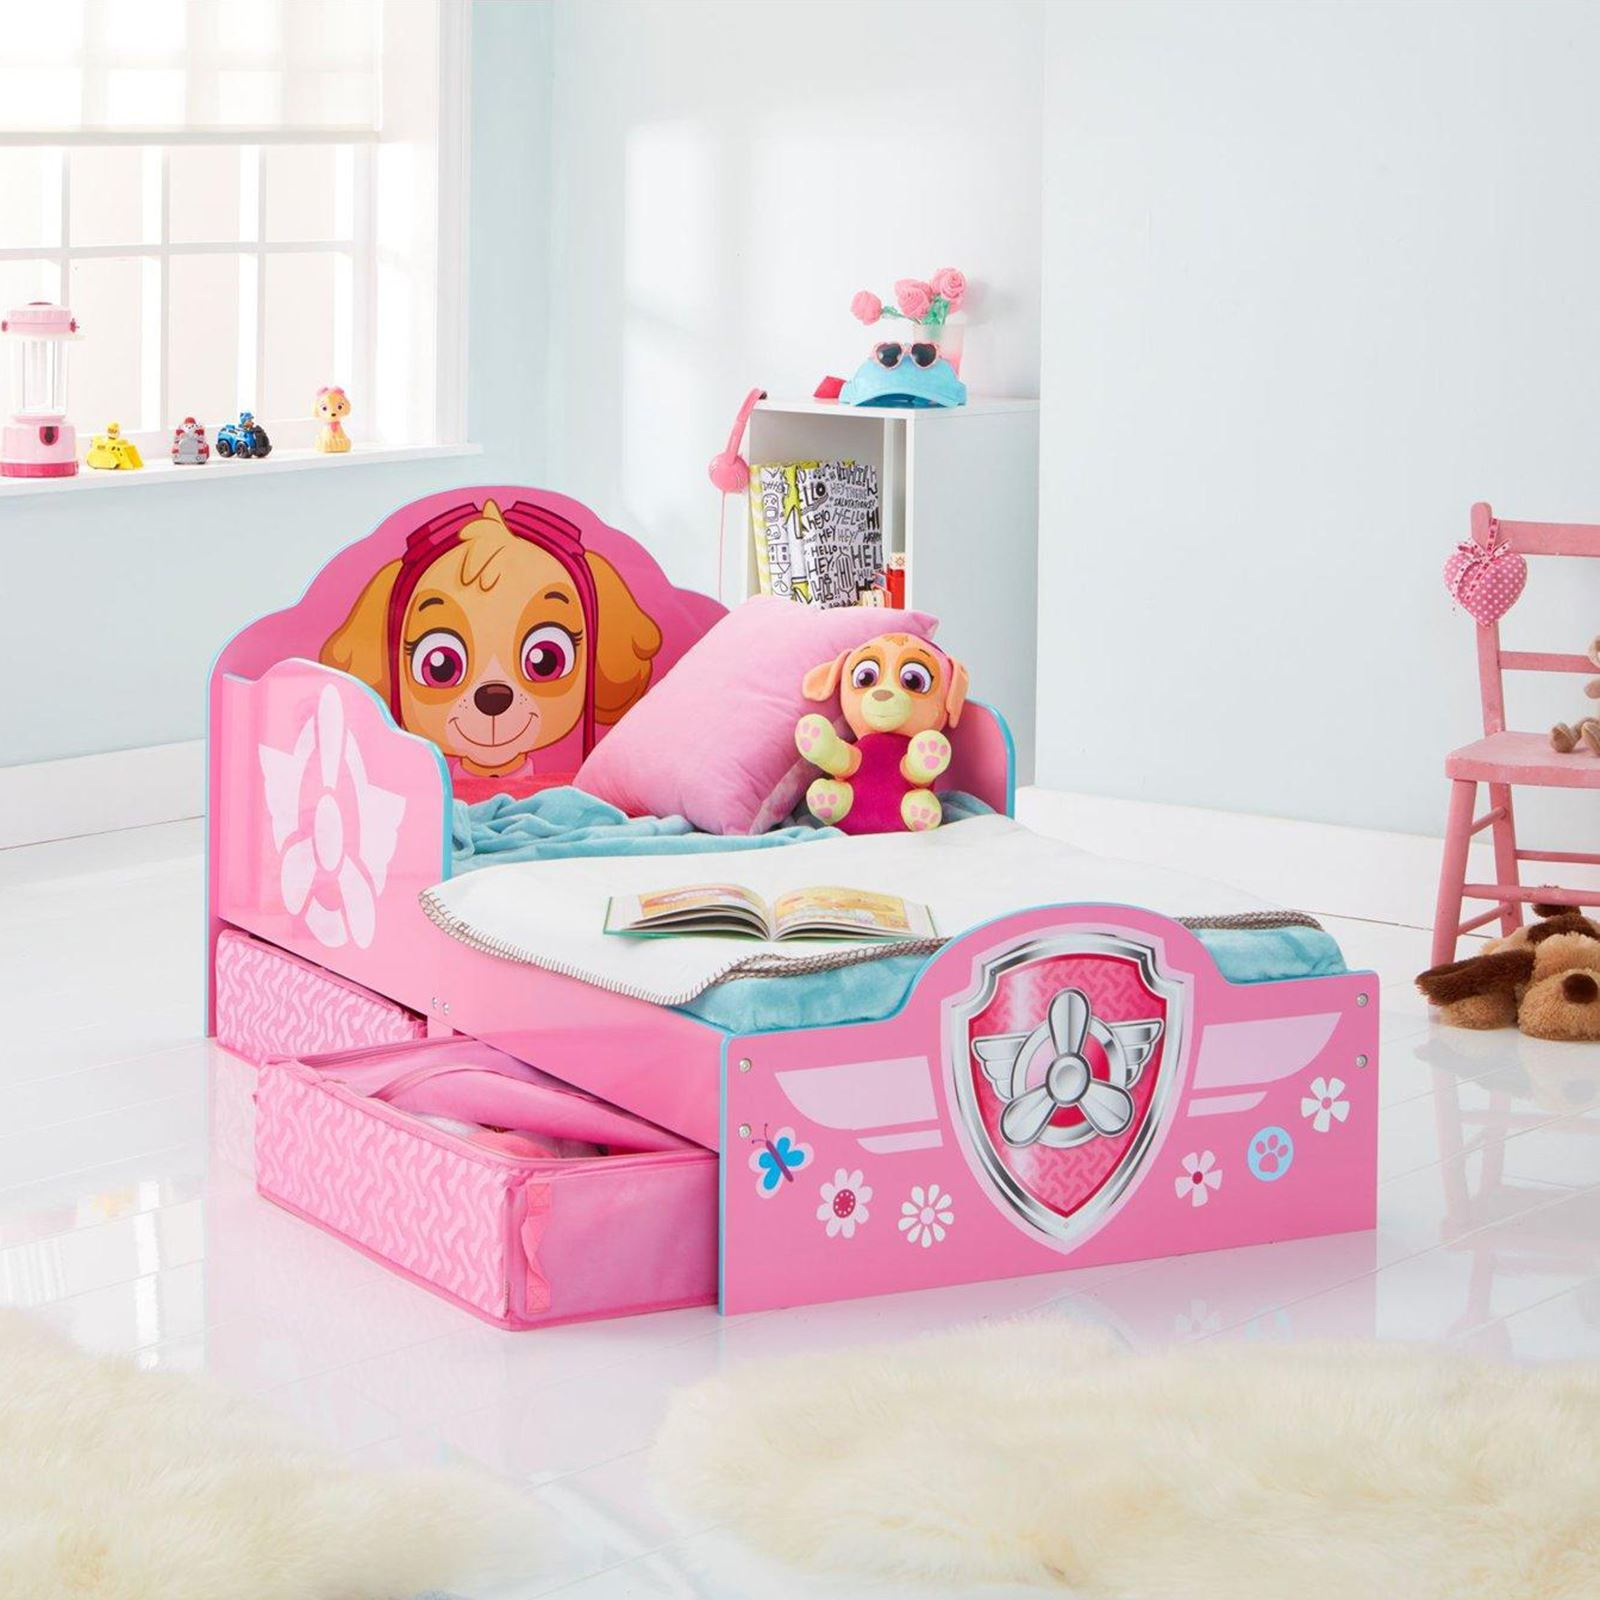 disney kleinkind bett mit lager matratze autos peppa. Black Bedroom Furniture Sets. Home Design Ideas